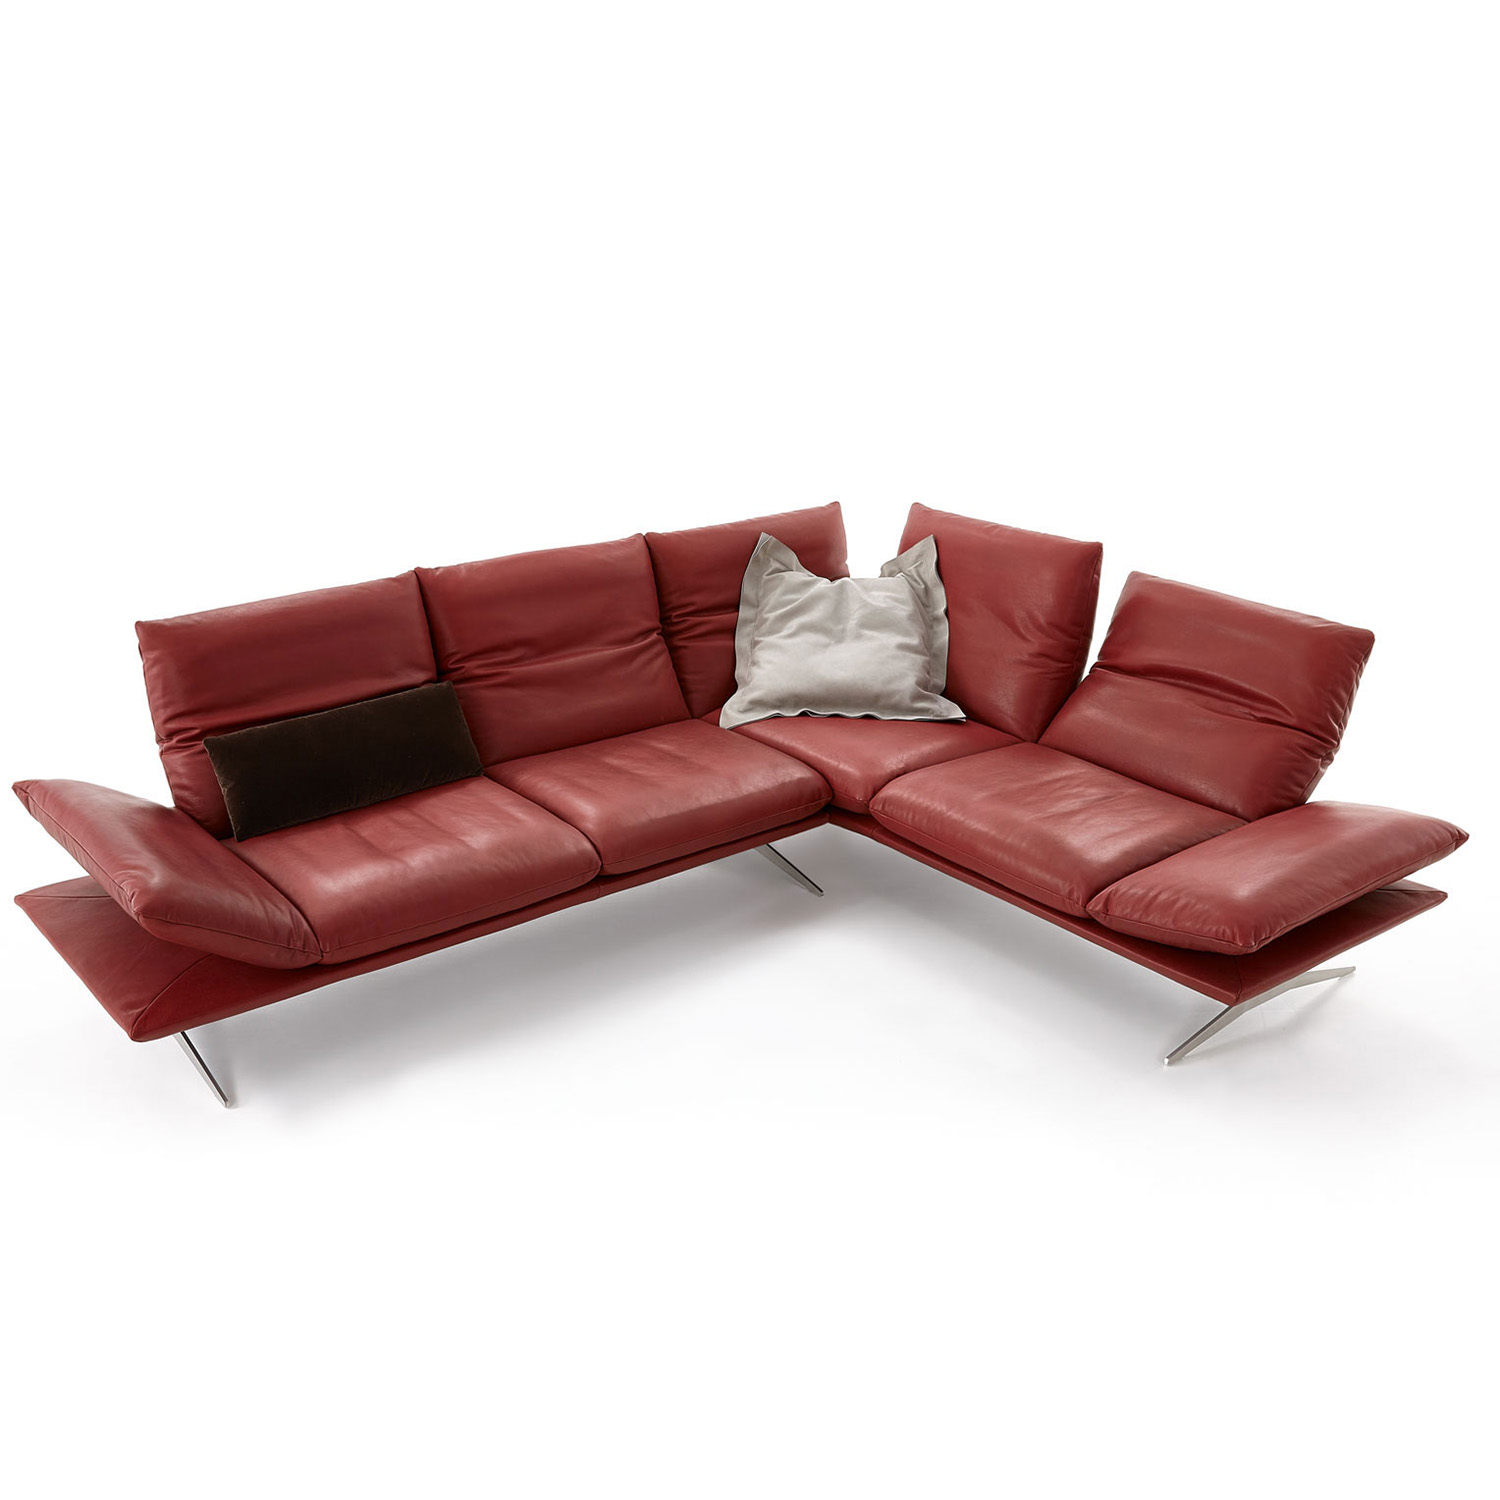 ledersofa rot excellent with ledersofa rot massivum sofa leeds sitzer rot echtleder with. Black Bedroom Furniture Sets. Home Design Ideas